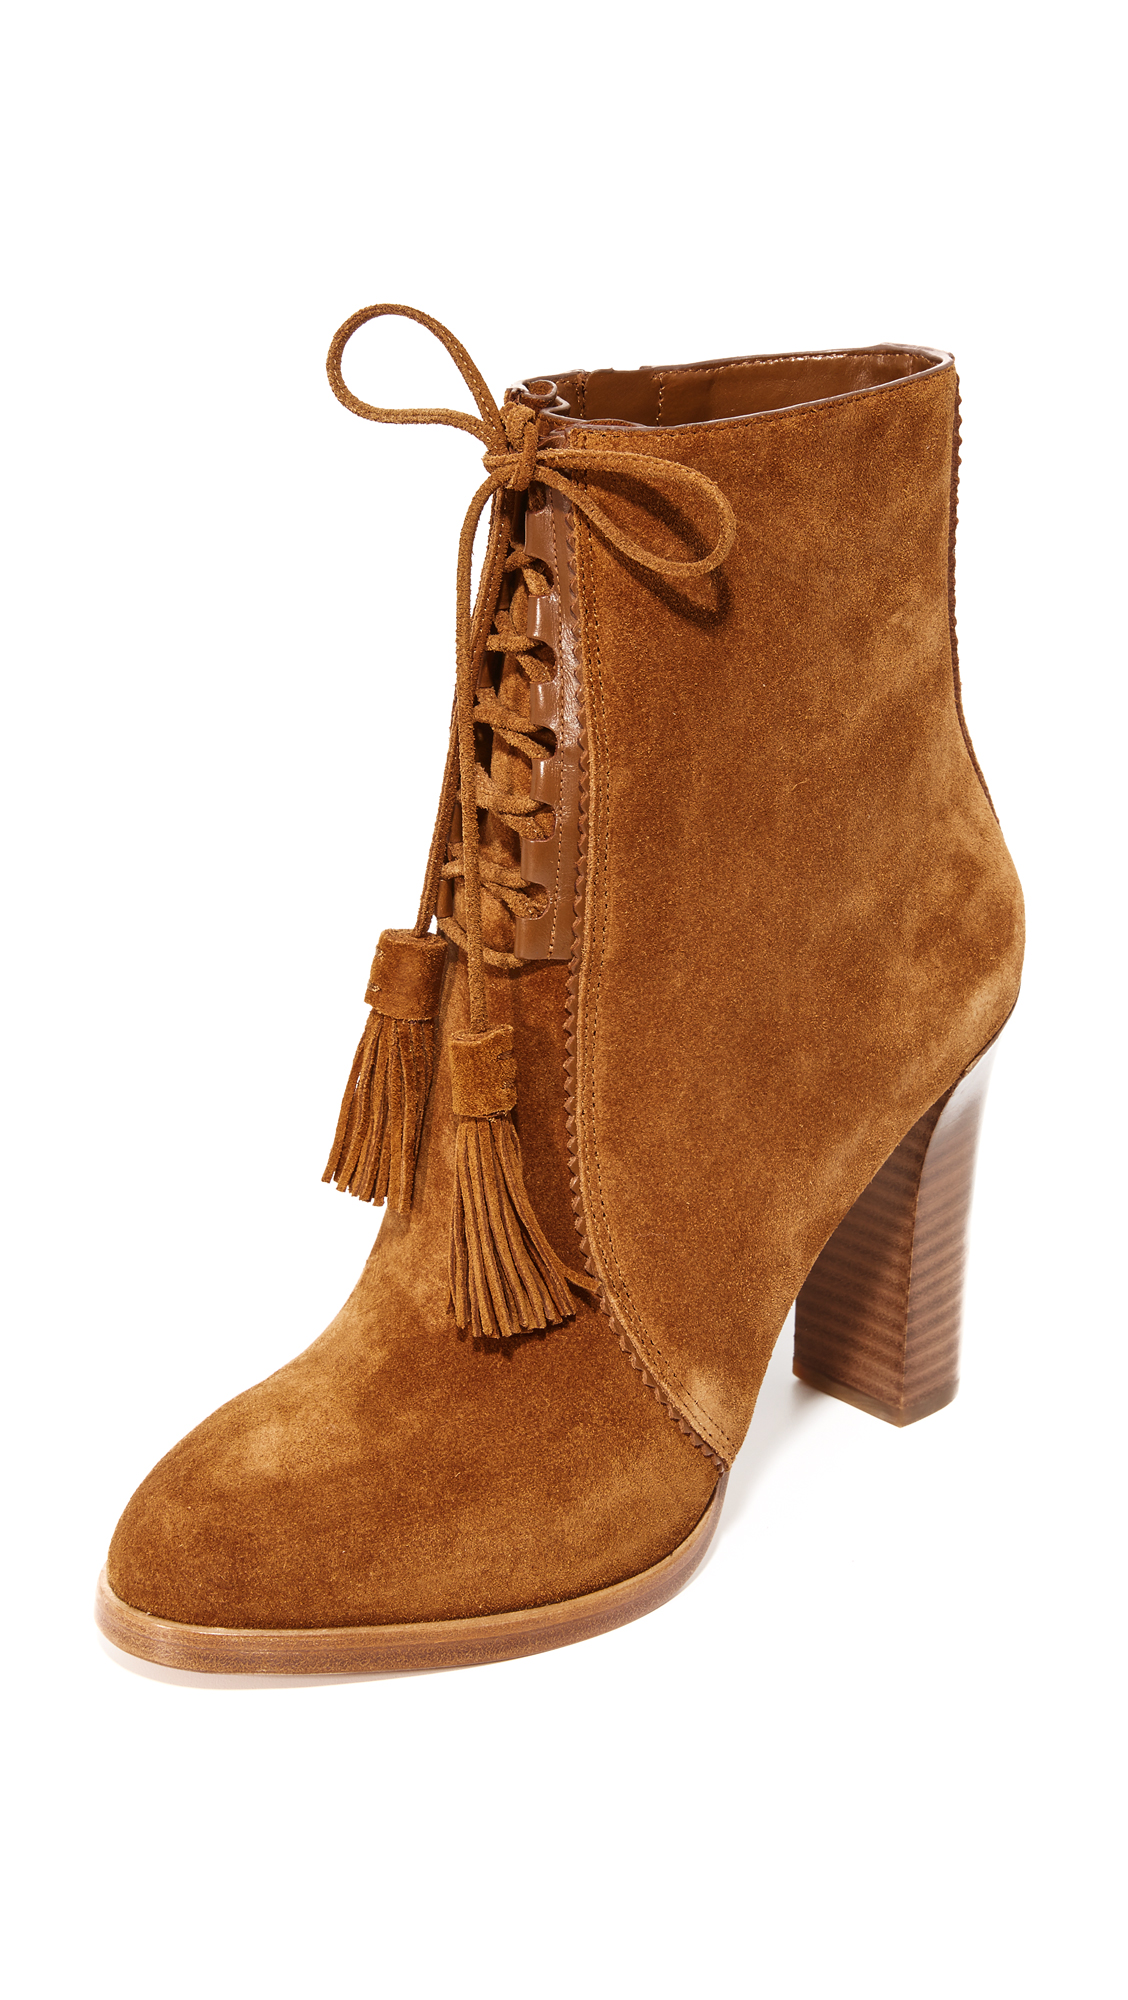 Michael Kors Collection Odile Lace Up Booties - Luggage